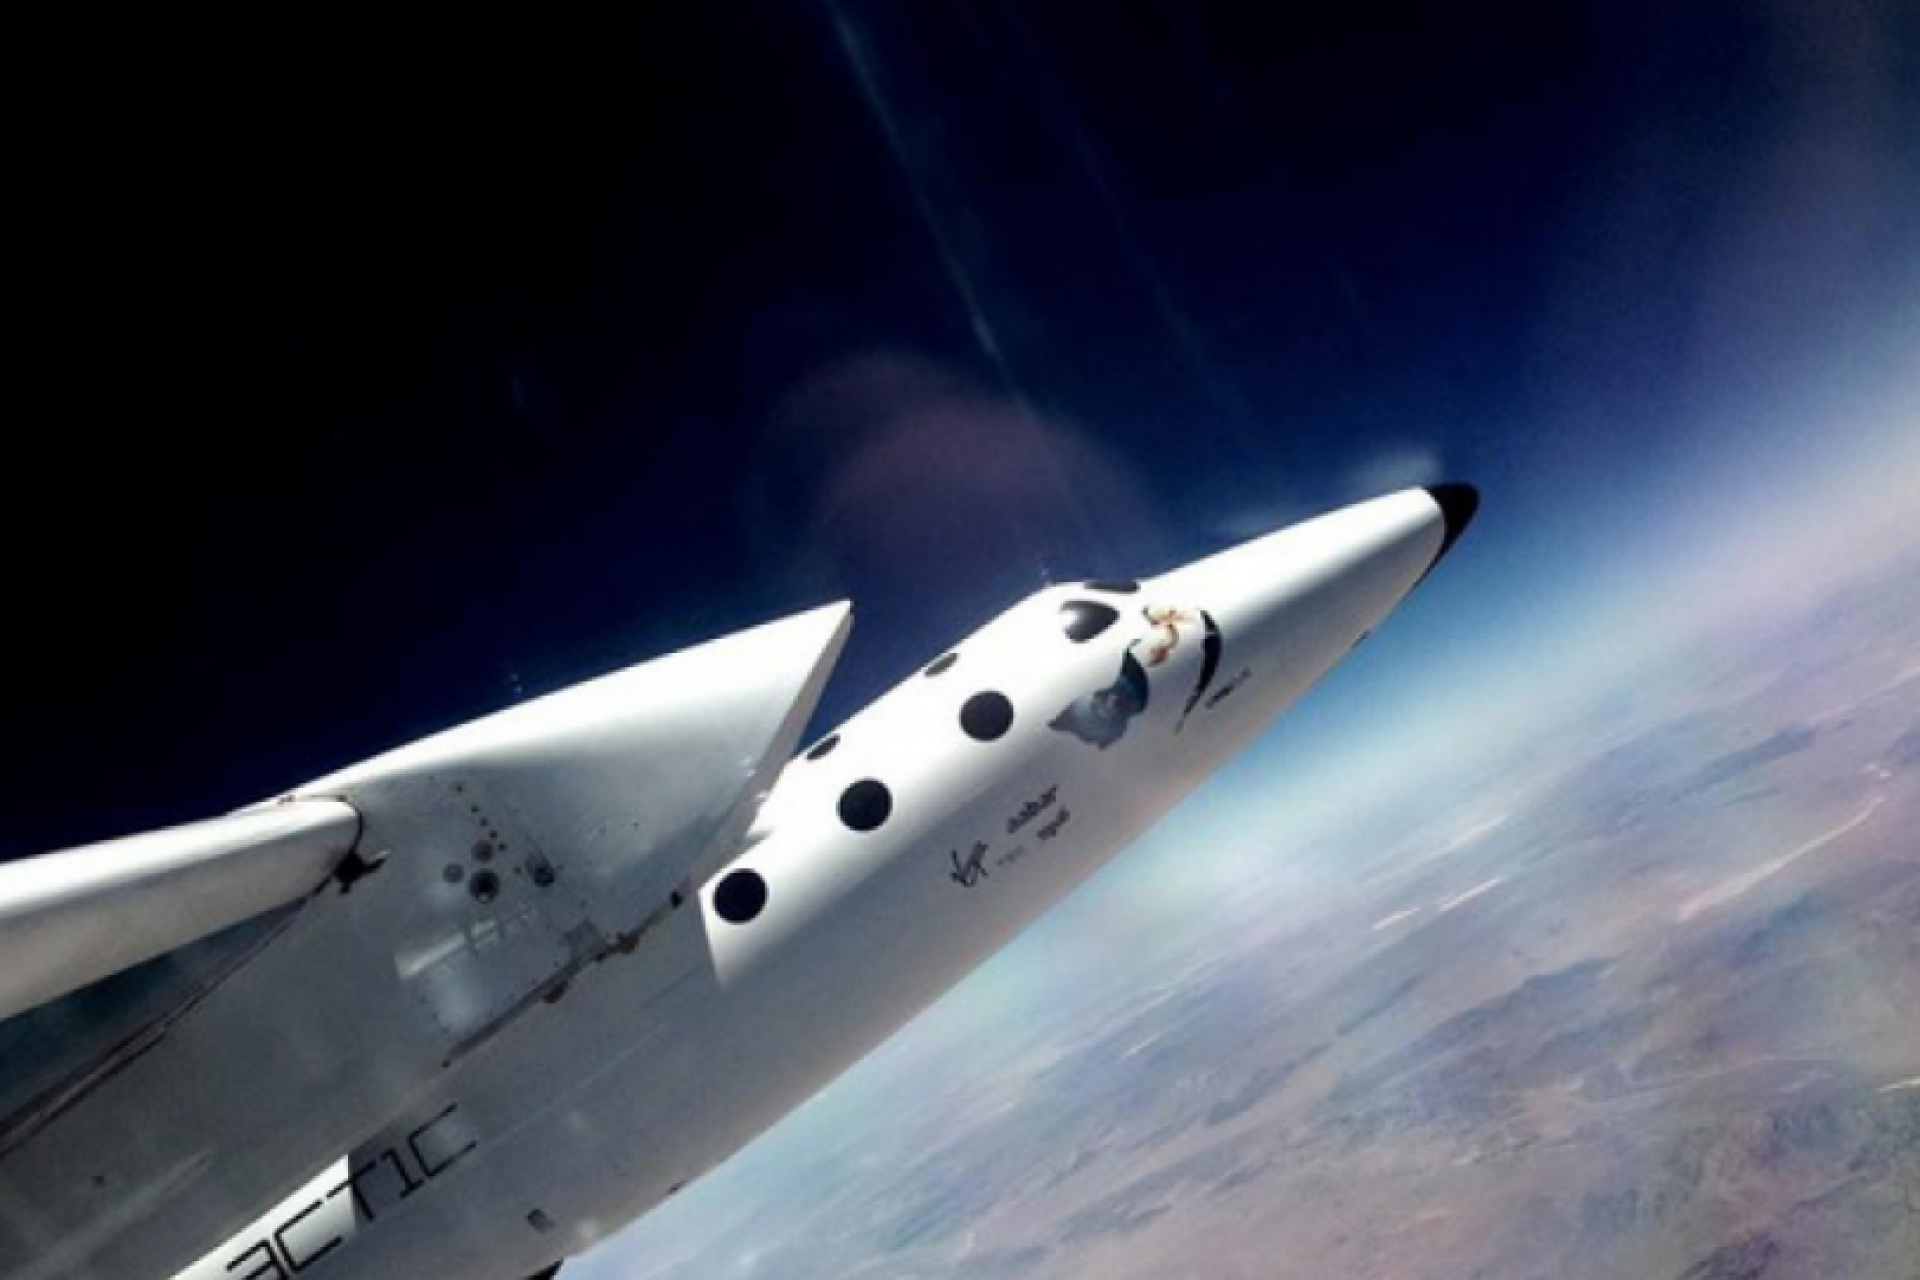 Virgin Galactic scheduled flights from the Italian cosmodrome